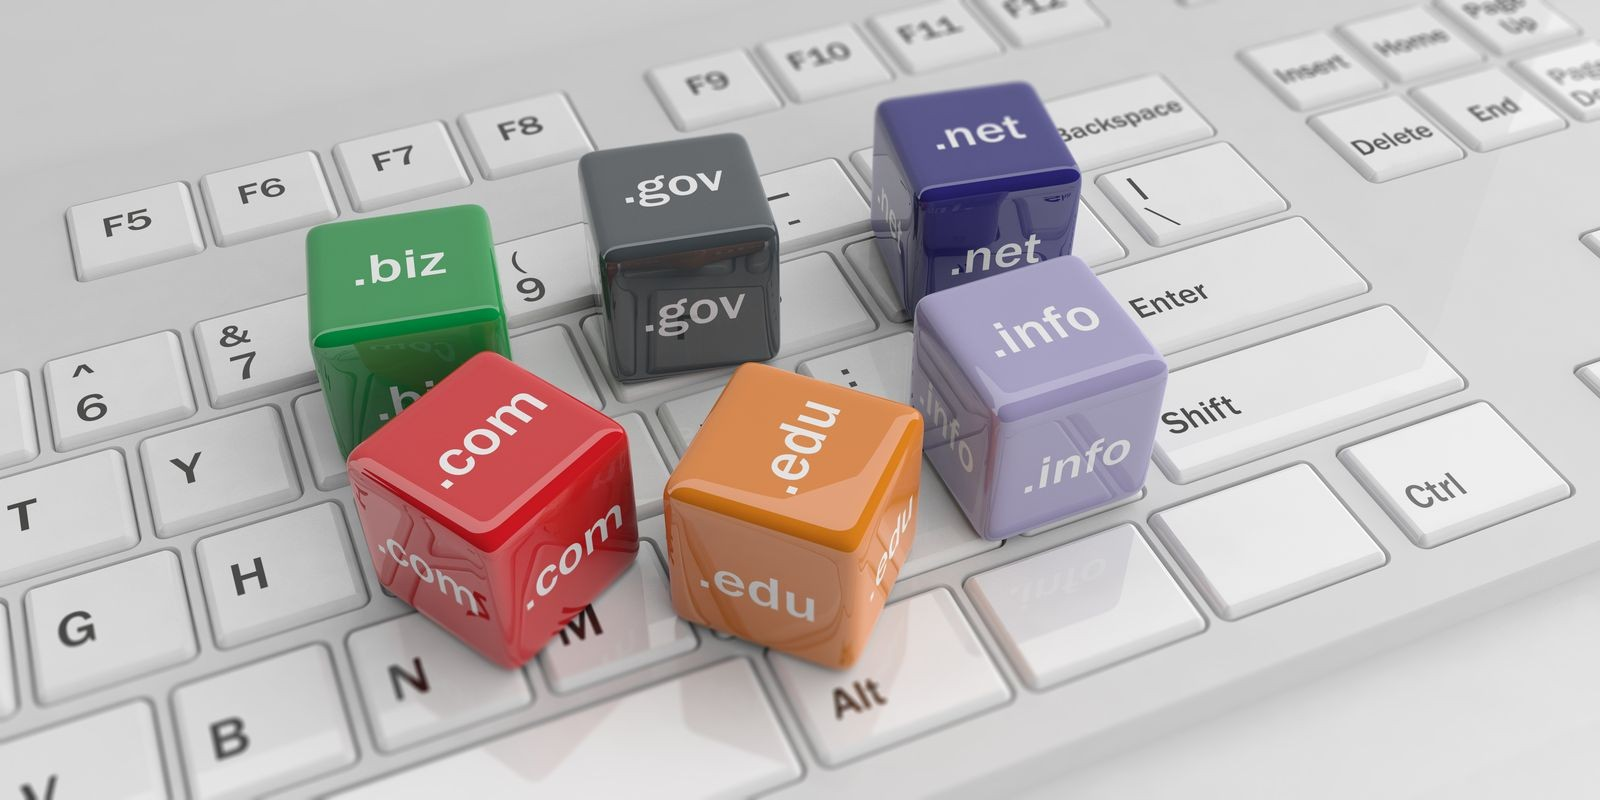 Business, product or domain names